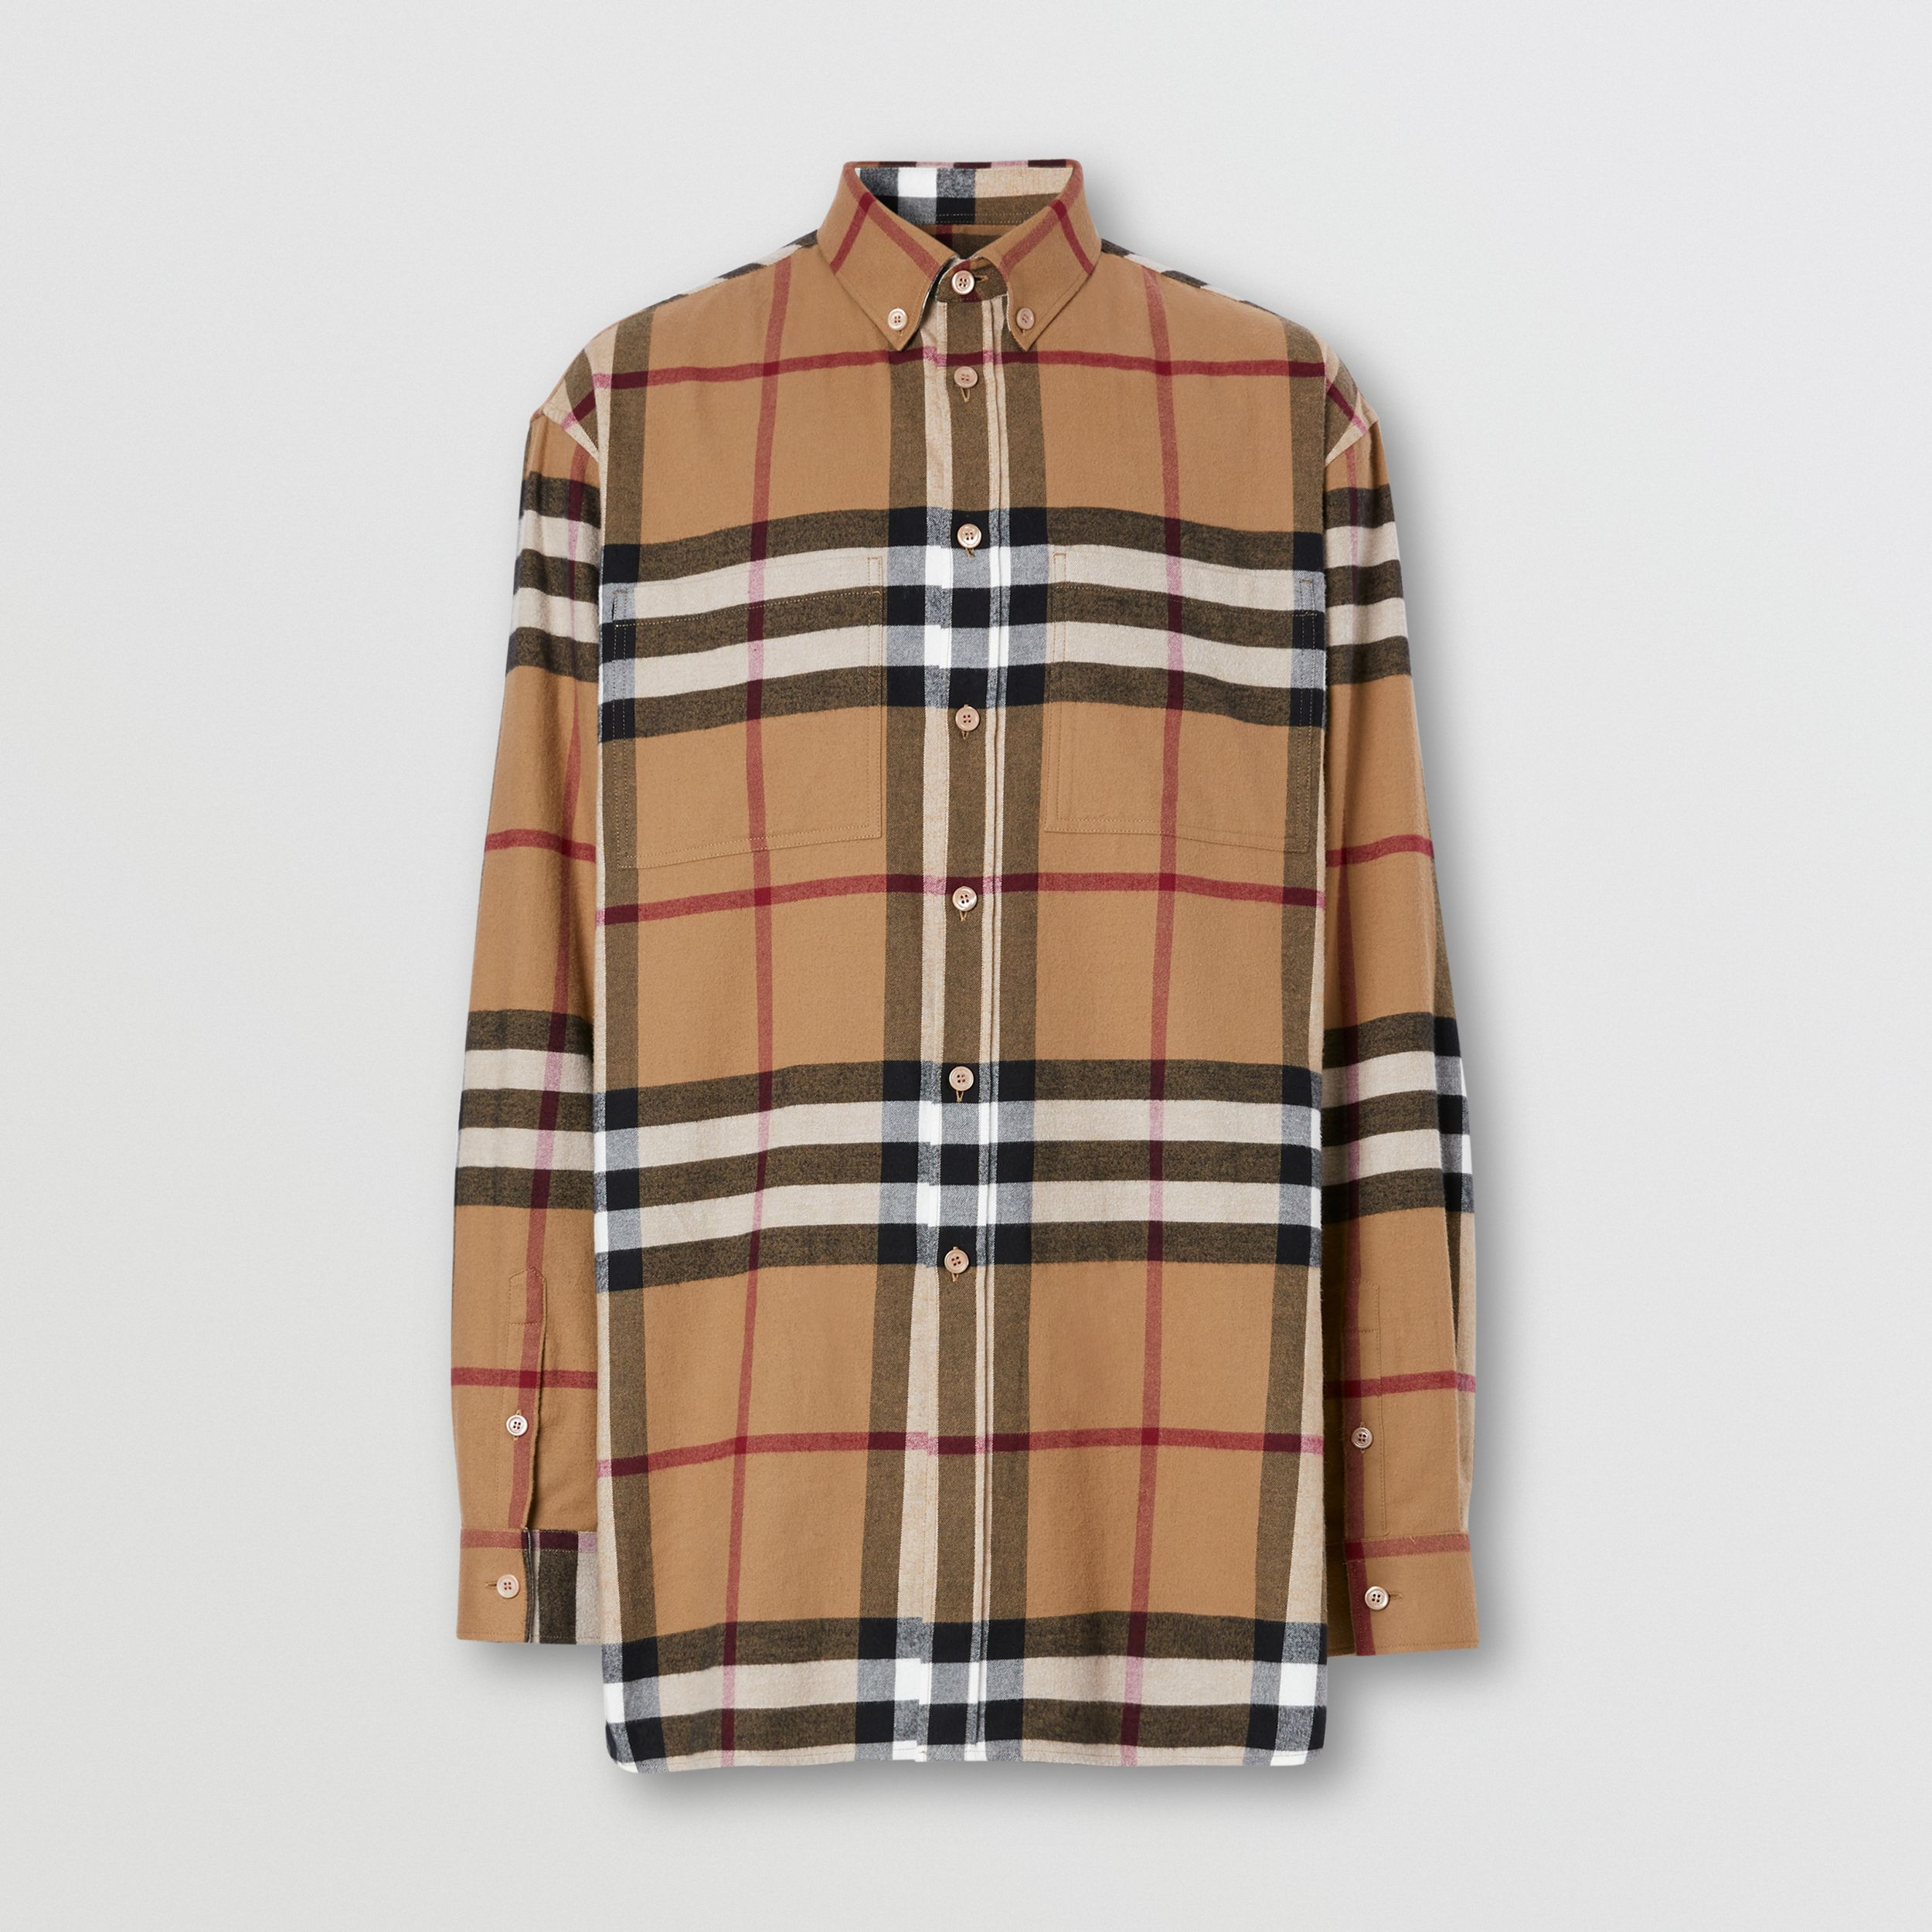 Relaxed Fit House Check Cotton Flannel Shirt in Birch Brown - Men | Burberry - 4